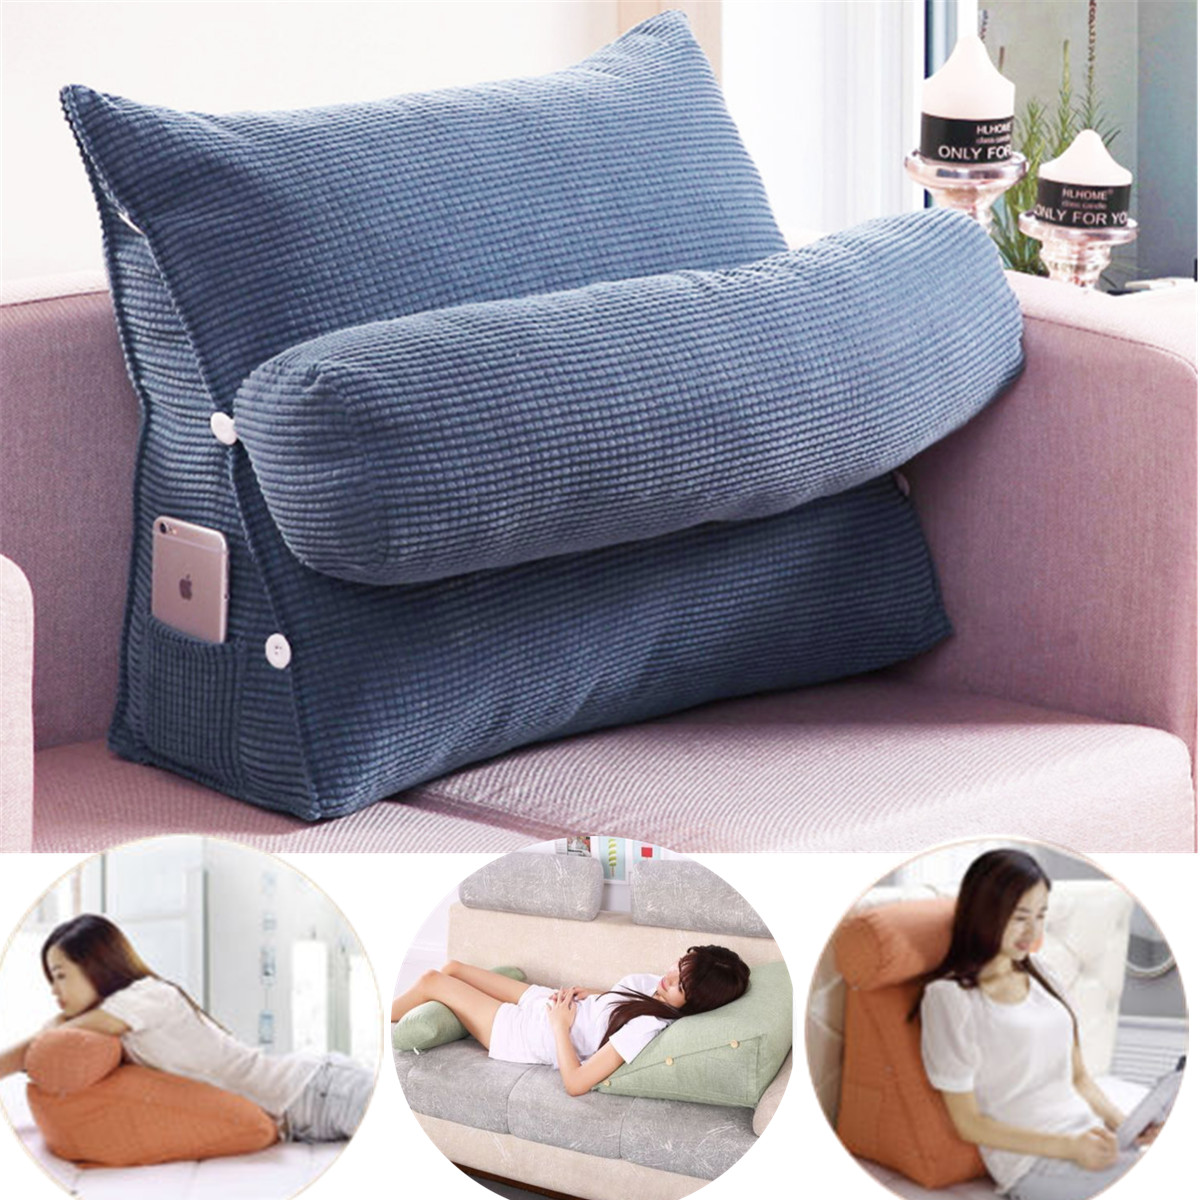 Lounger Bed Rest Back Pillow Support TV Reading Back Rest Seat Soft Sofa Office Chair living Room Cushion Home DecorLounger Bed Rest Back Pillow Support TV Reading Back Rest Seat Soft Sofa Office Chair living Room Cushion Home Decor